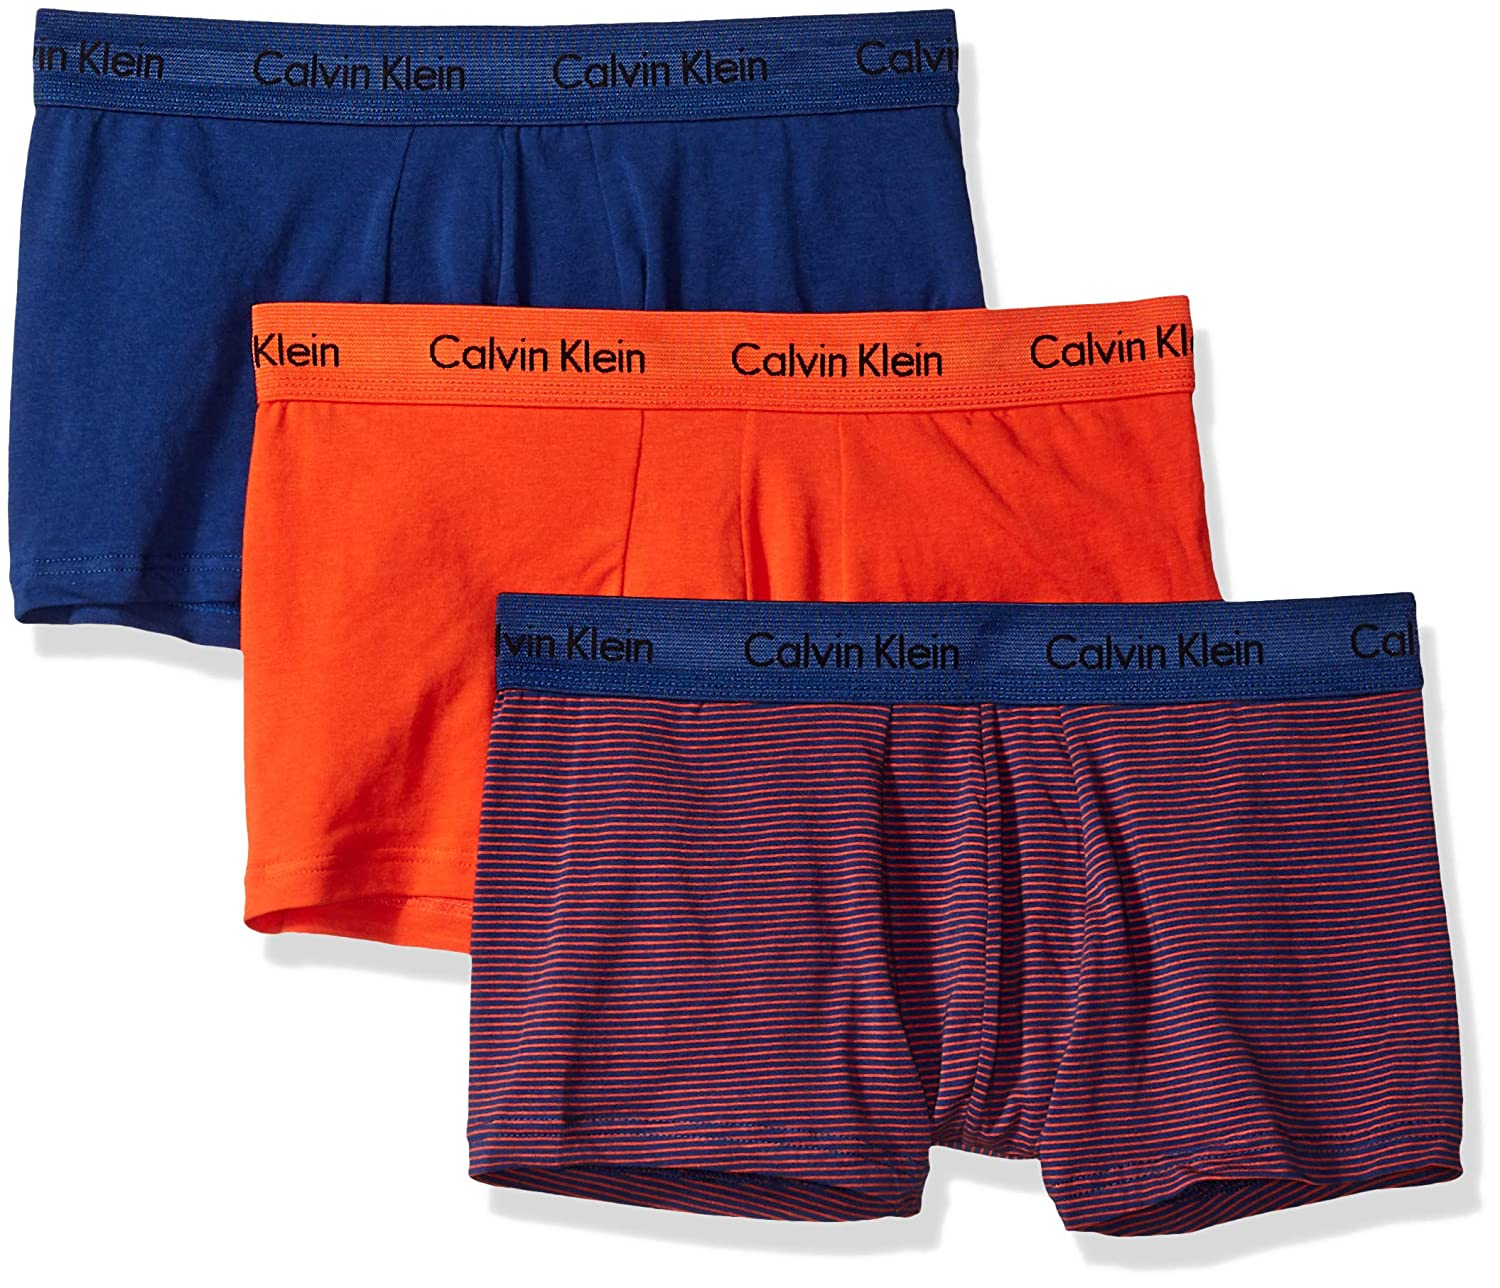 Calvin Klein Cotton Stretch 3 Pack Low Rise Trunks NU2664